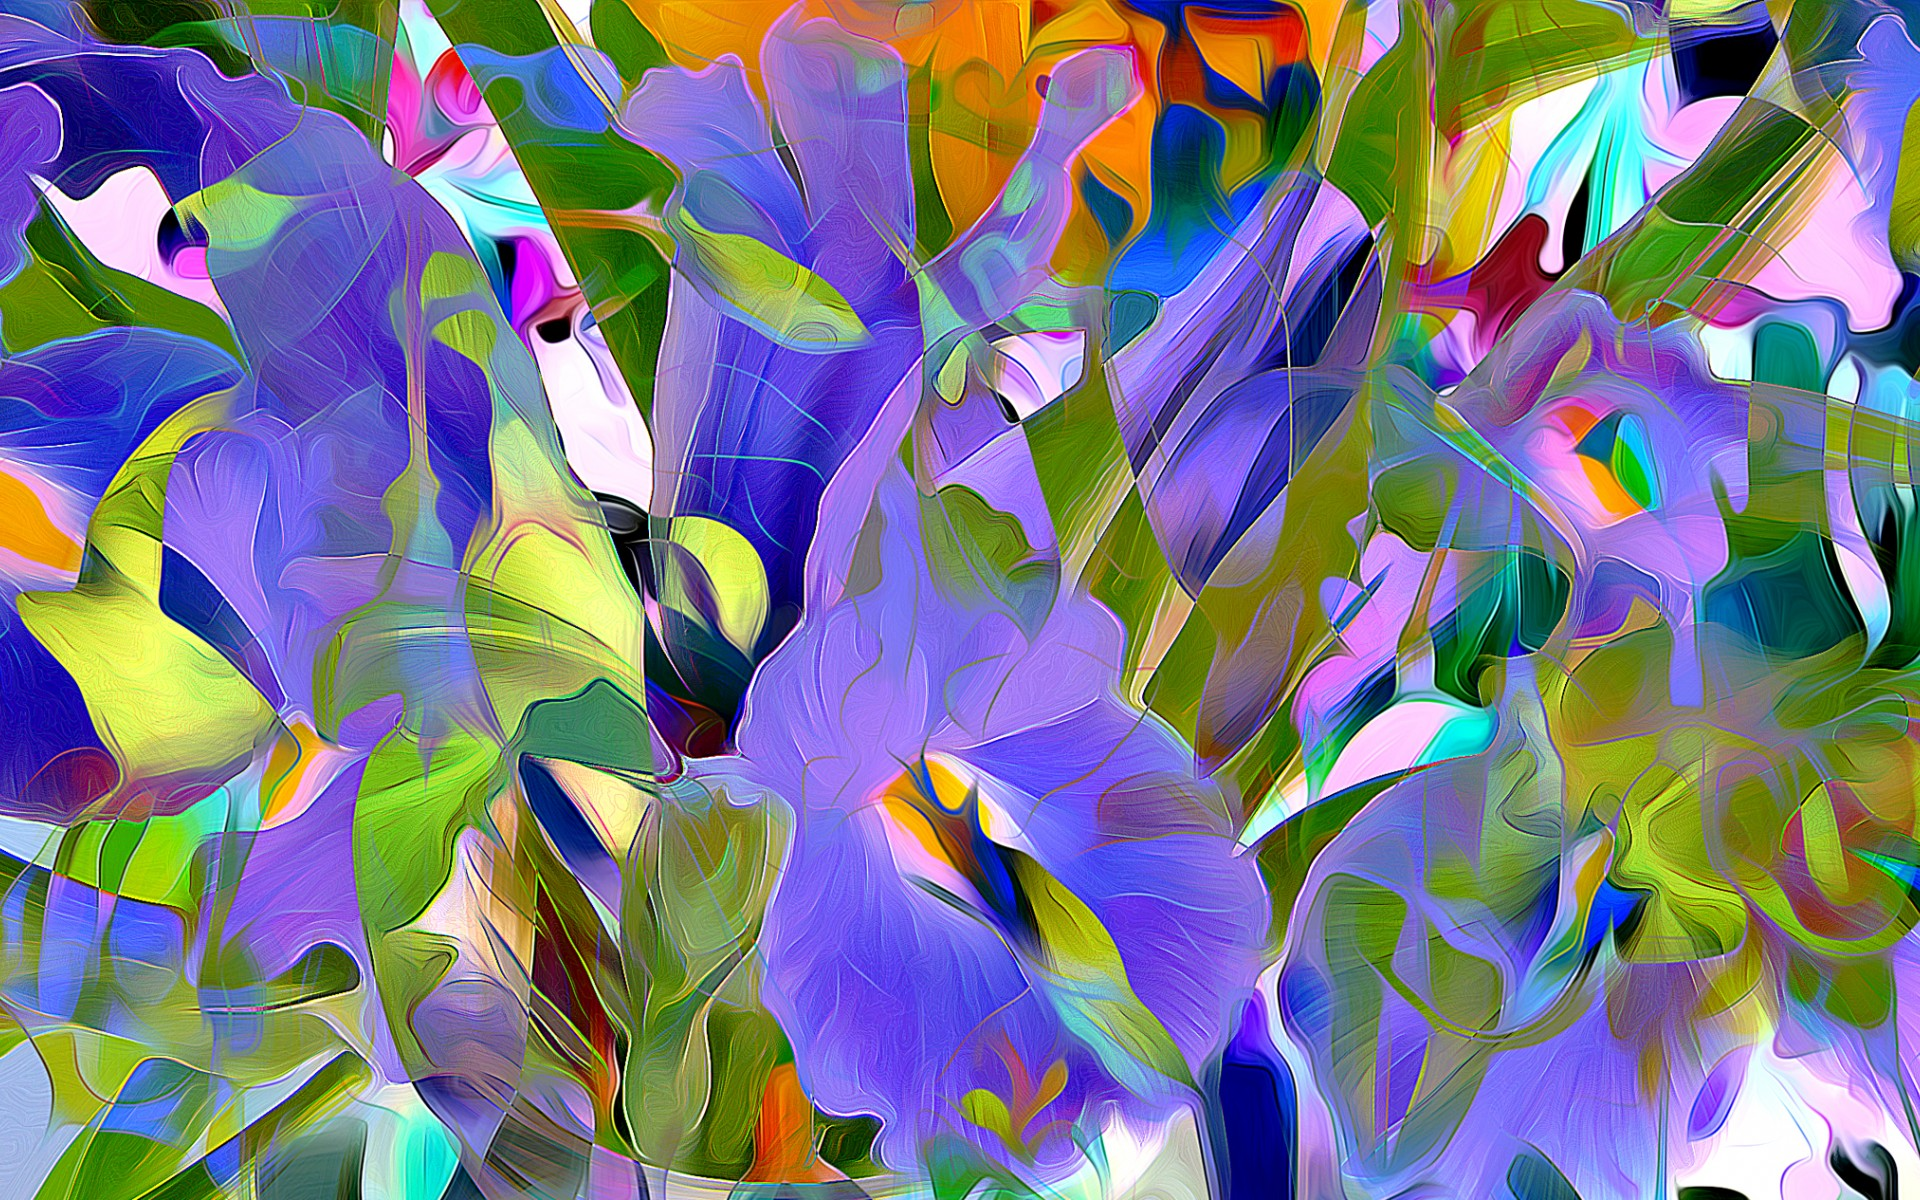 Abstract Flowers Painting Hd Wallpaper